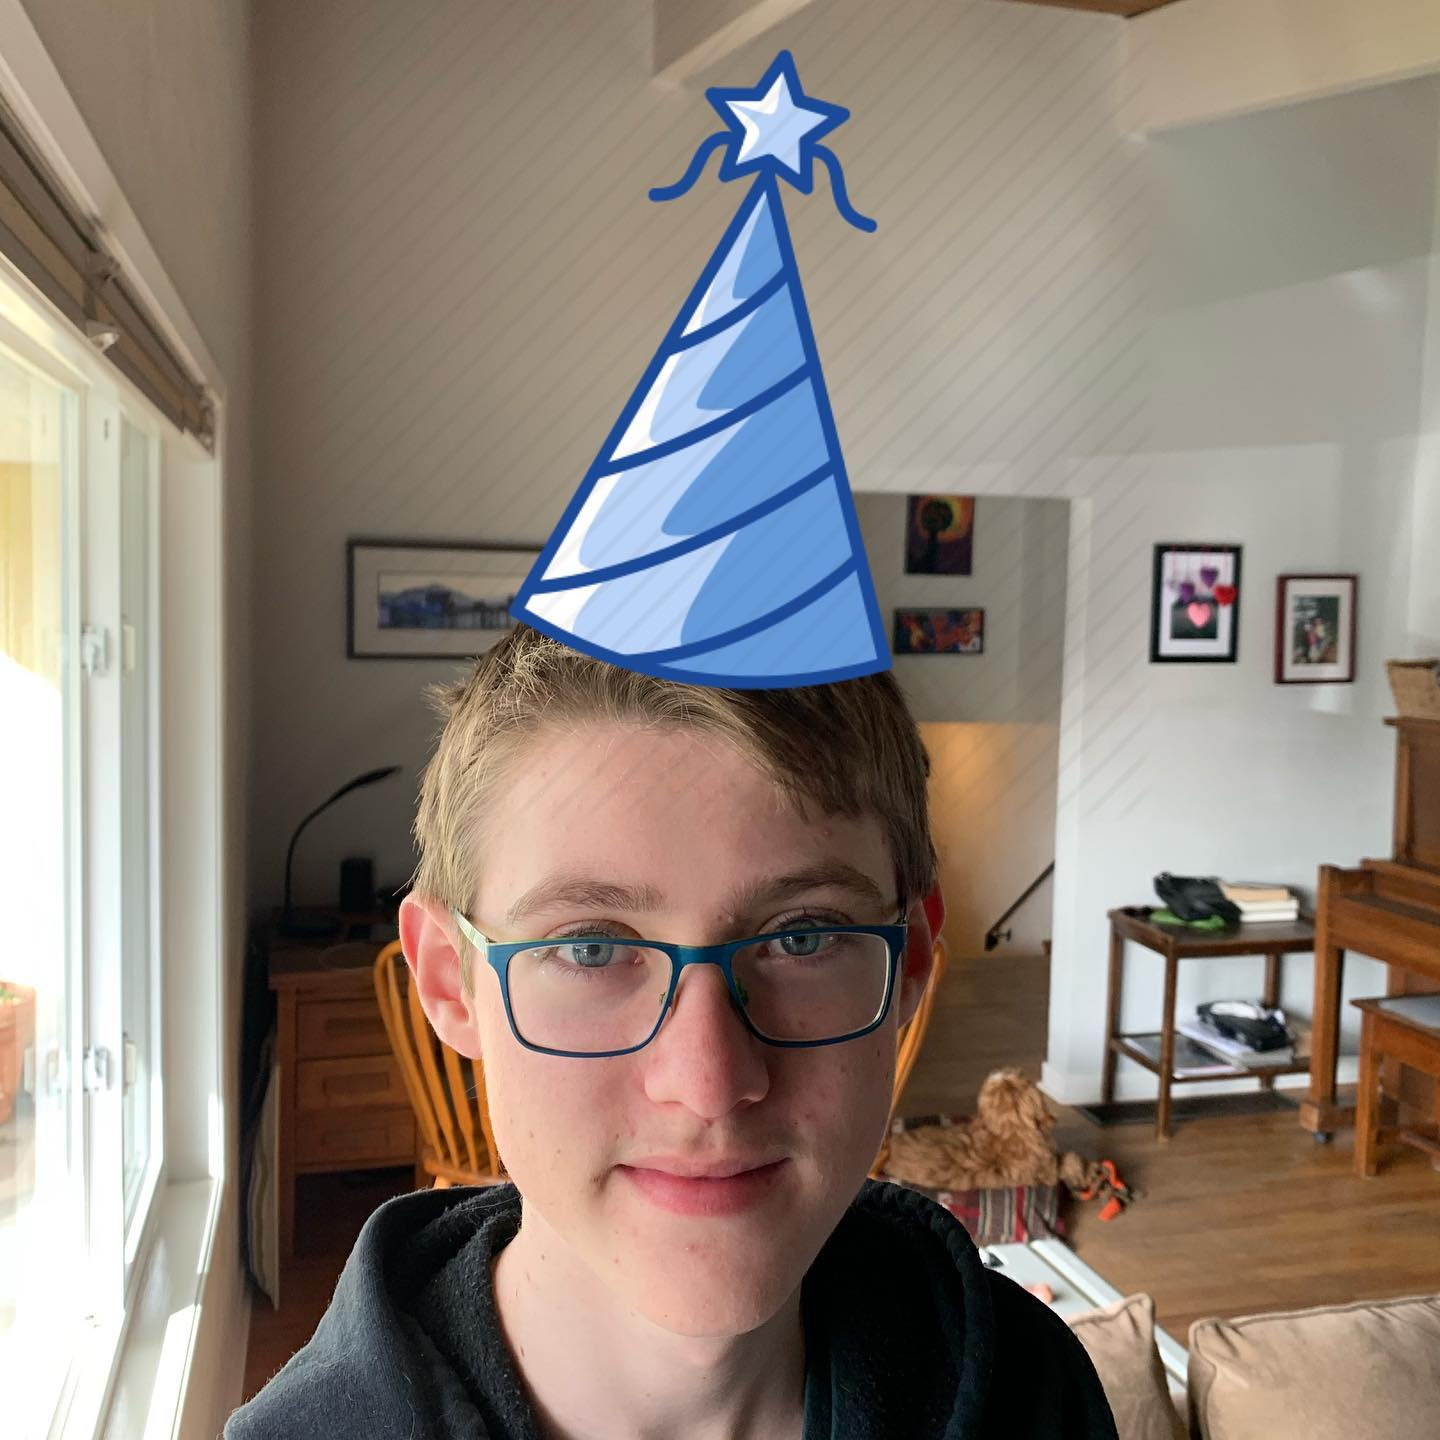 How time flies. 15 years ago E joined this world and our lives. It's been quite an adventures since then. Love you lots. #happybirrhday #turned15